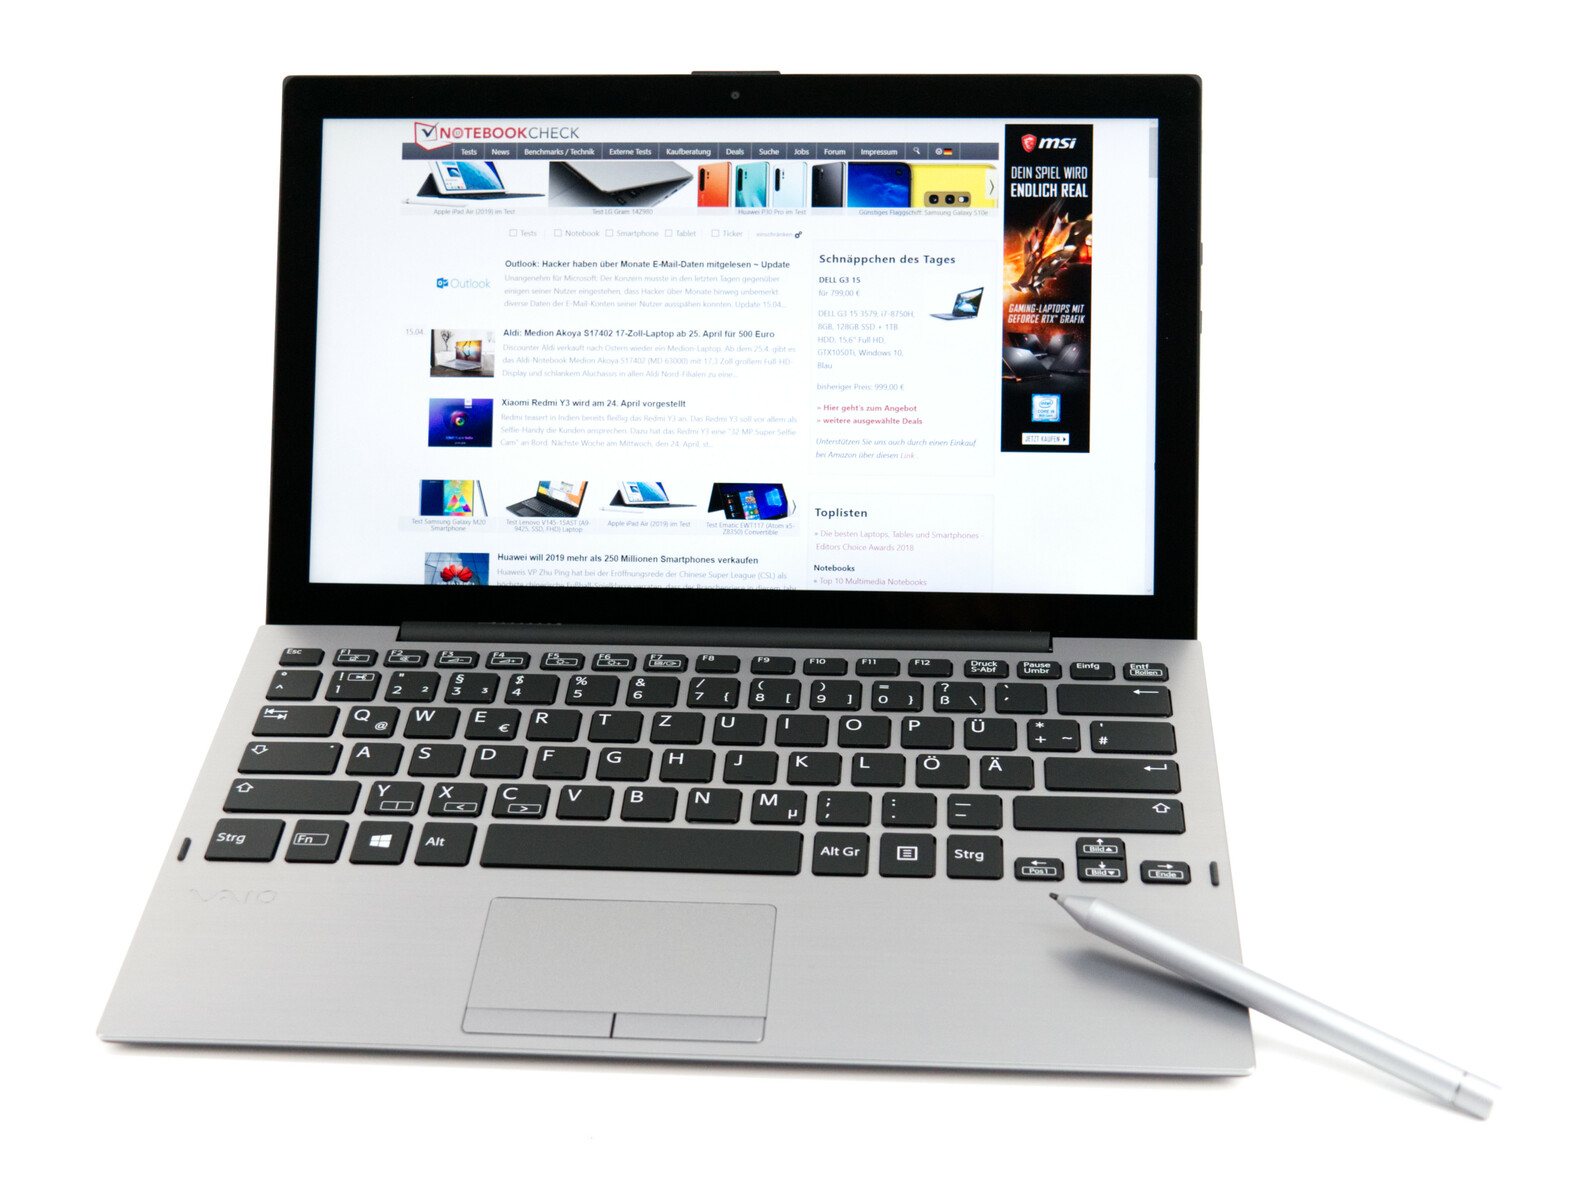 Notebookcheck's Top 10 Convertibles (2-in-1 Tablets) - NotebookCheck